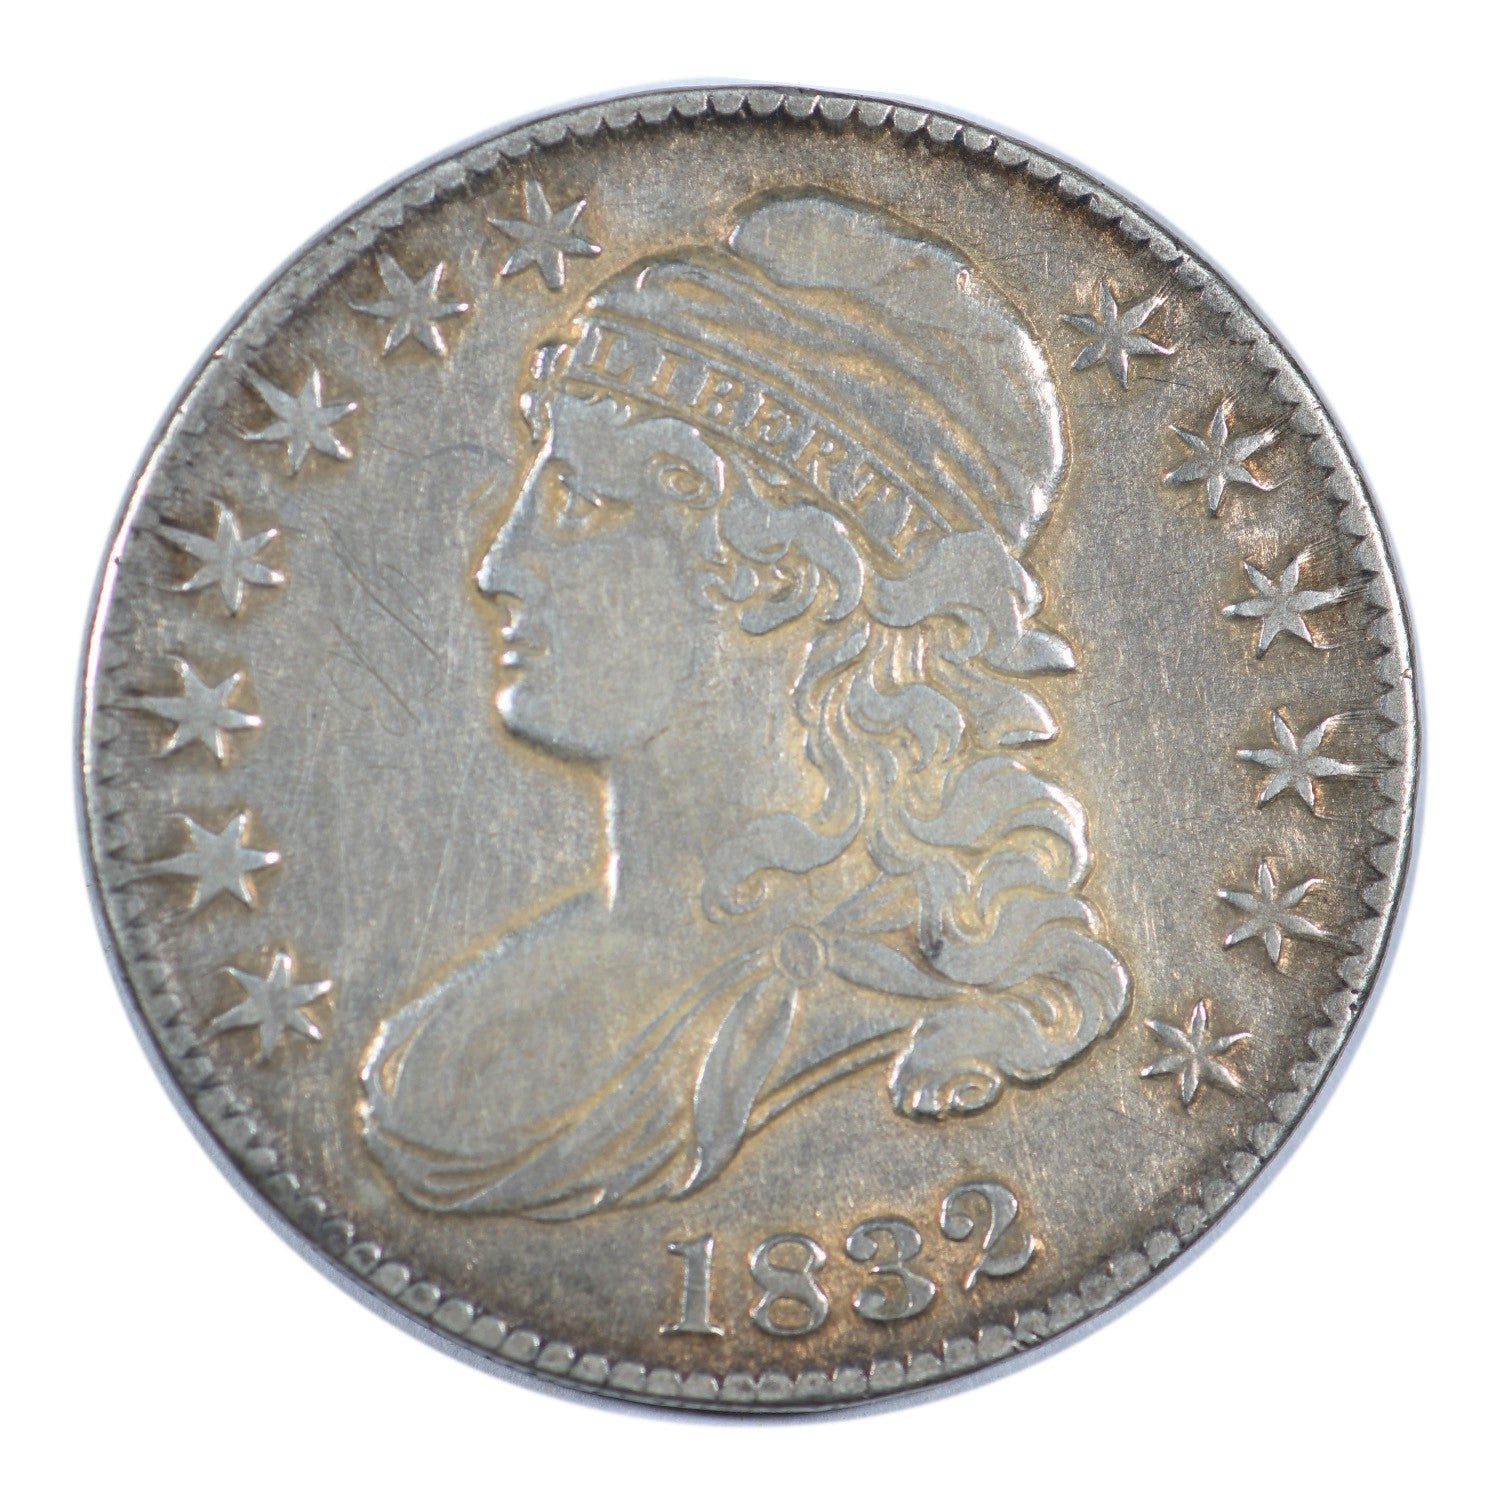 1832 Capped Bust Half Dollar Large Letters Fine Condition